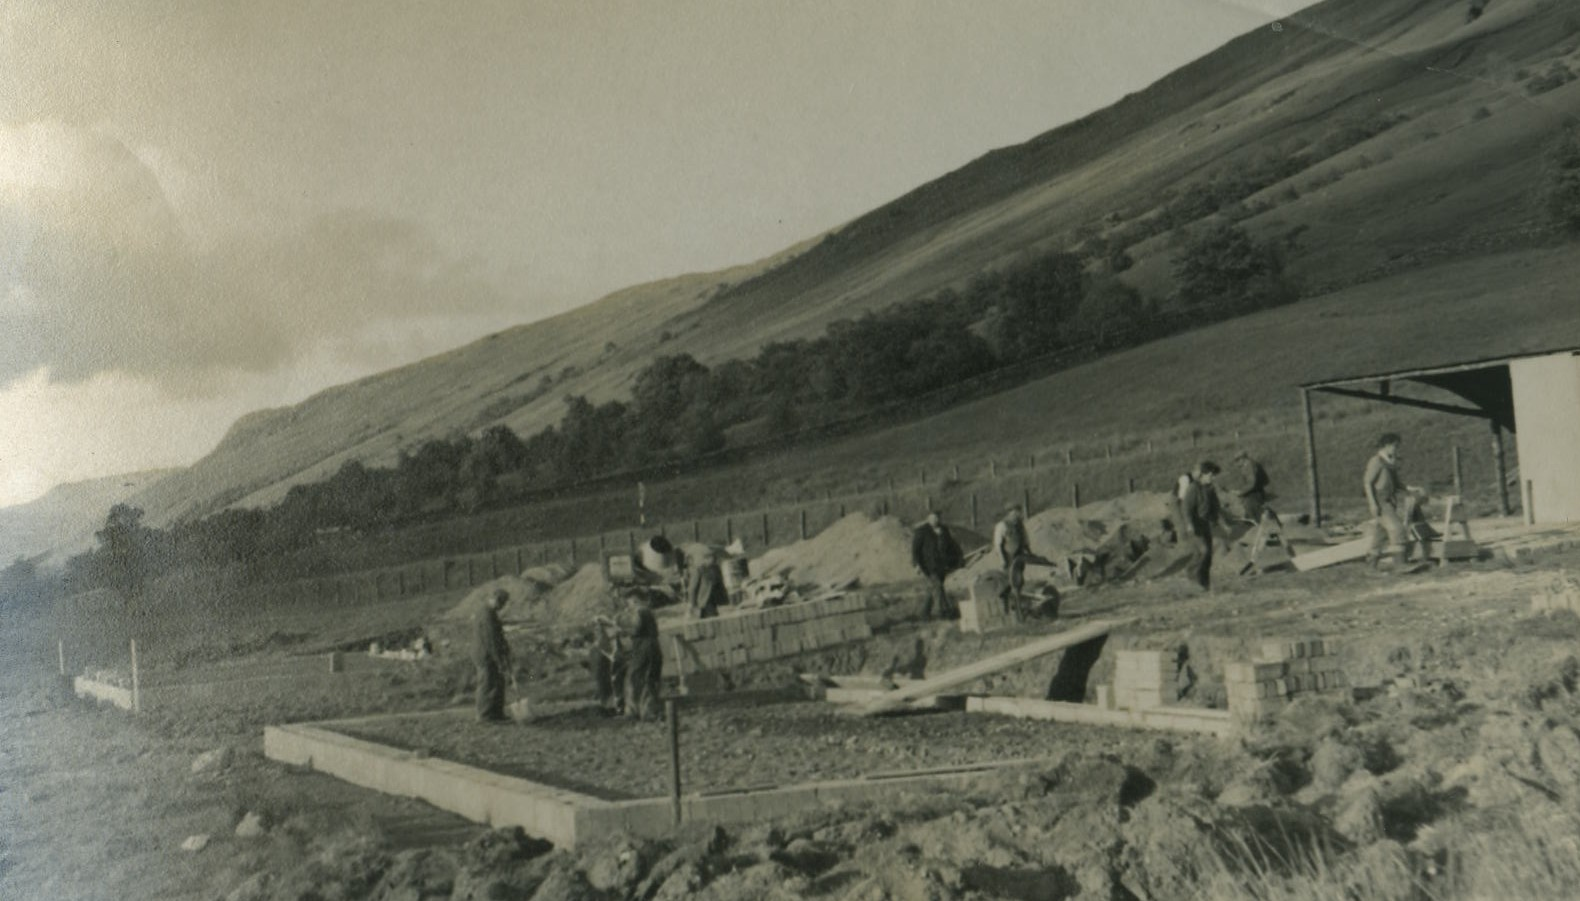 Building of first Hydro Houses